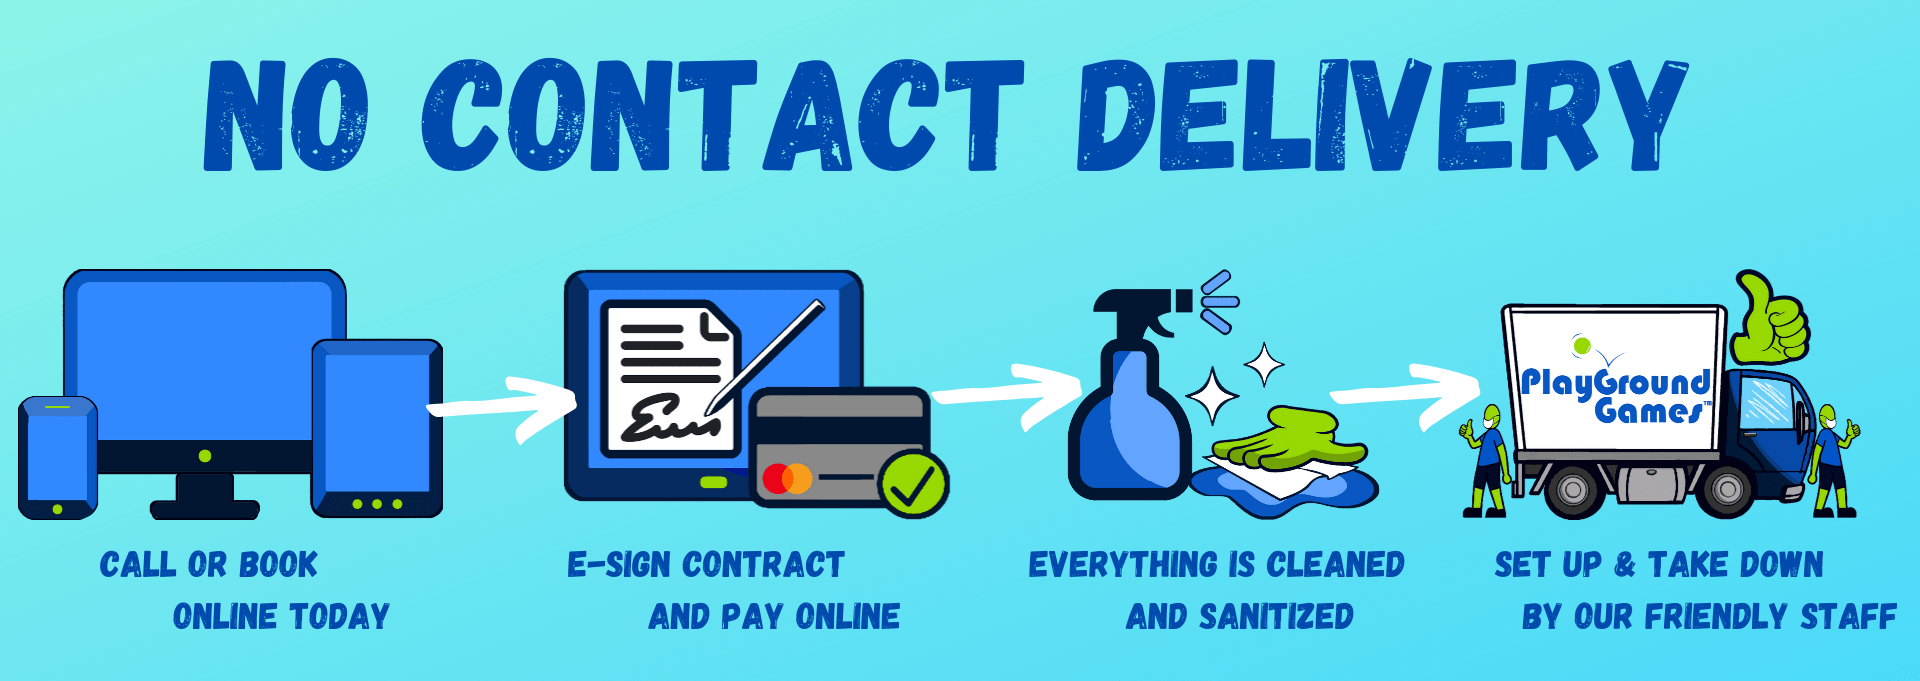 clean no contact delivery in Chicago IL